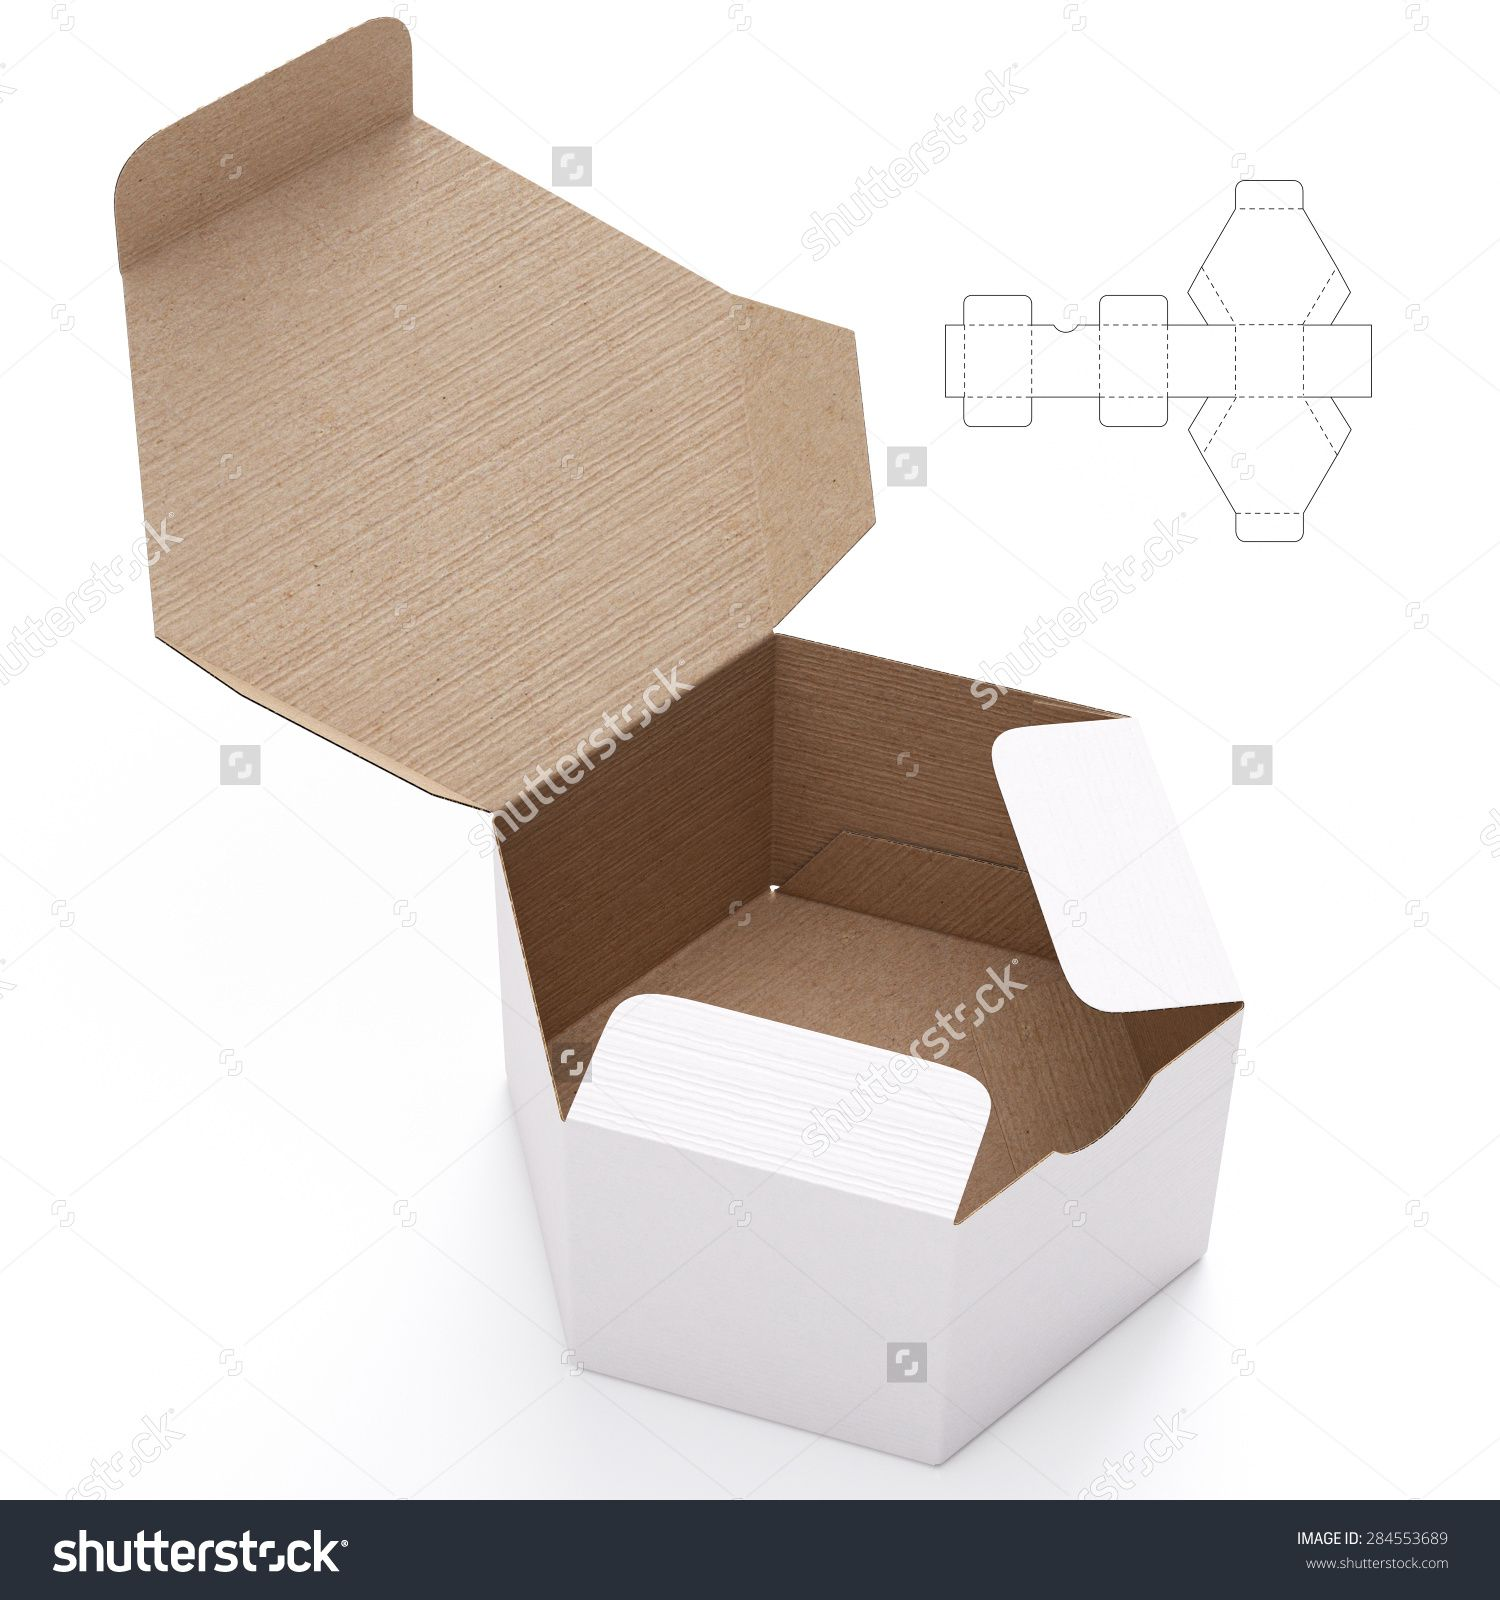 Hexagonal Cardboard Open Box With Die Cut Template On White Background Stock Photo 284553689 Shutterstock